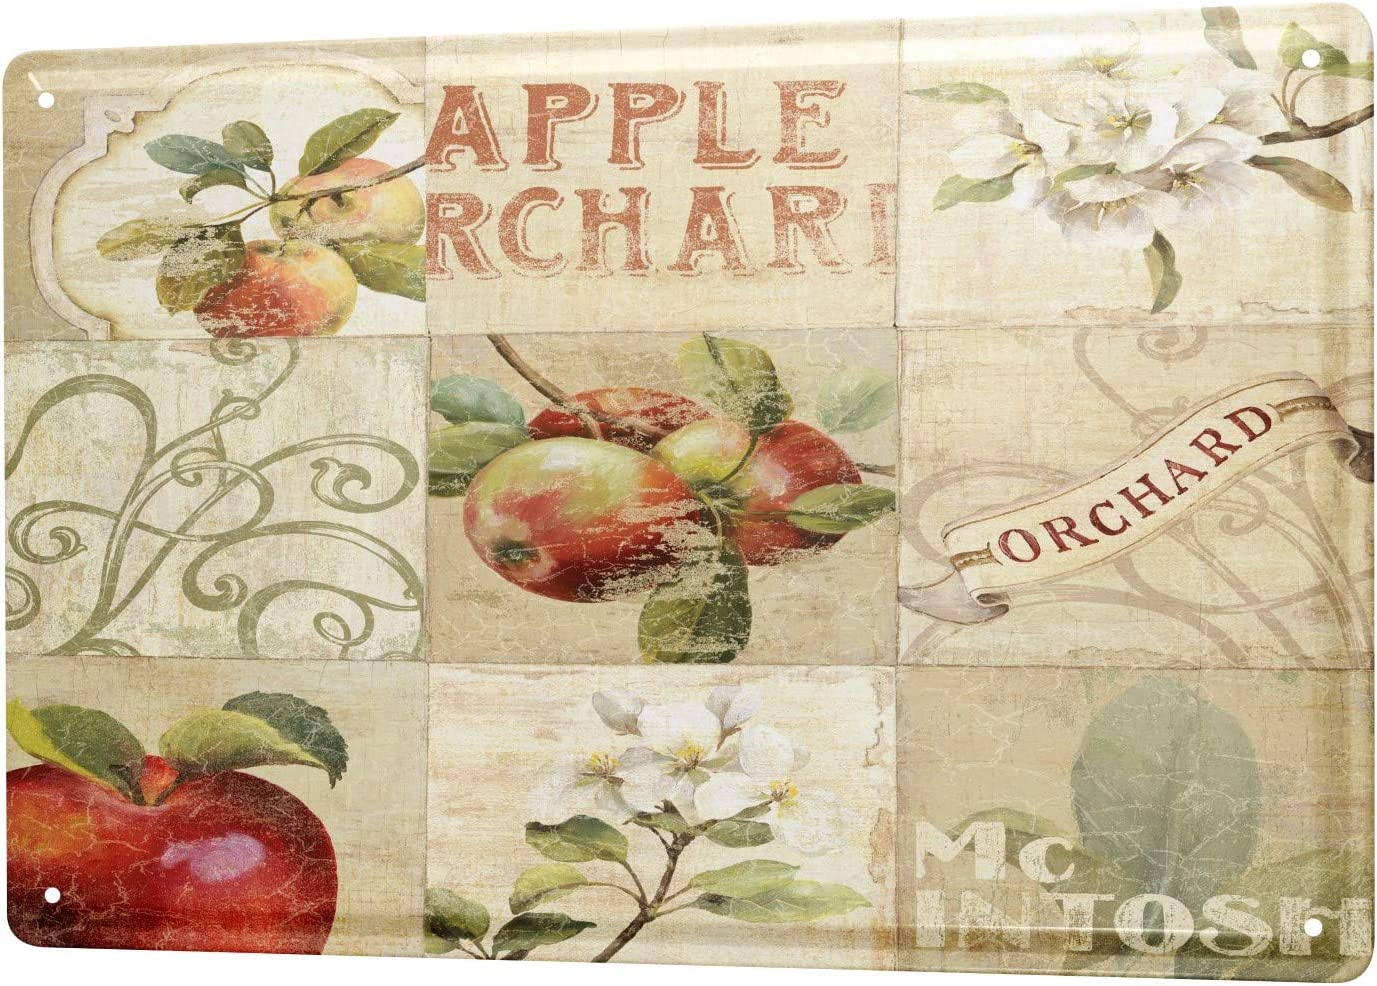 LEotiE SINCE 2004 Tin Sign Metal Plate Decorative Sign Home Decor Plaques Plants Decoration Apples Apple Blossom Orchard 8X12